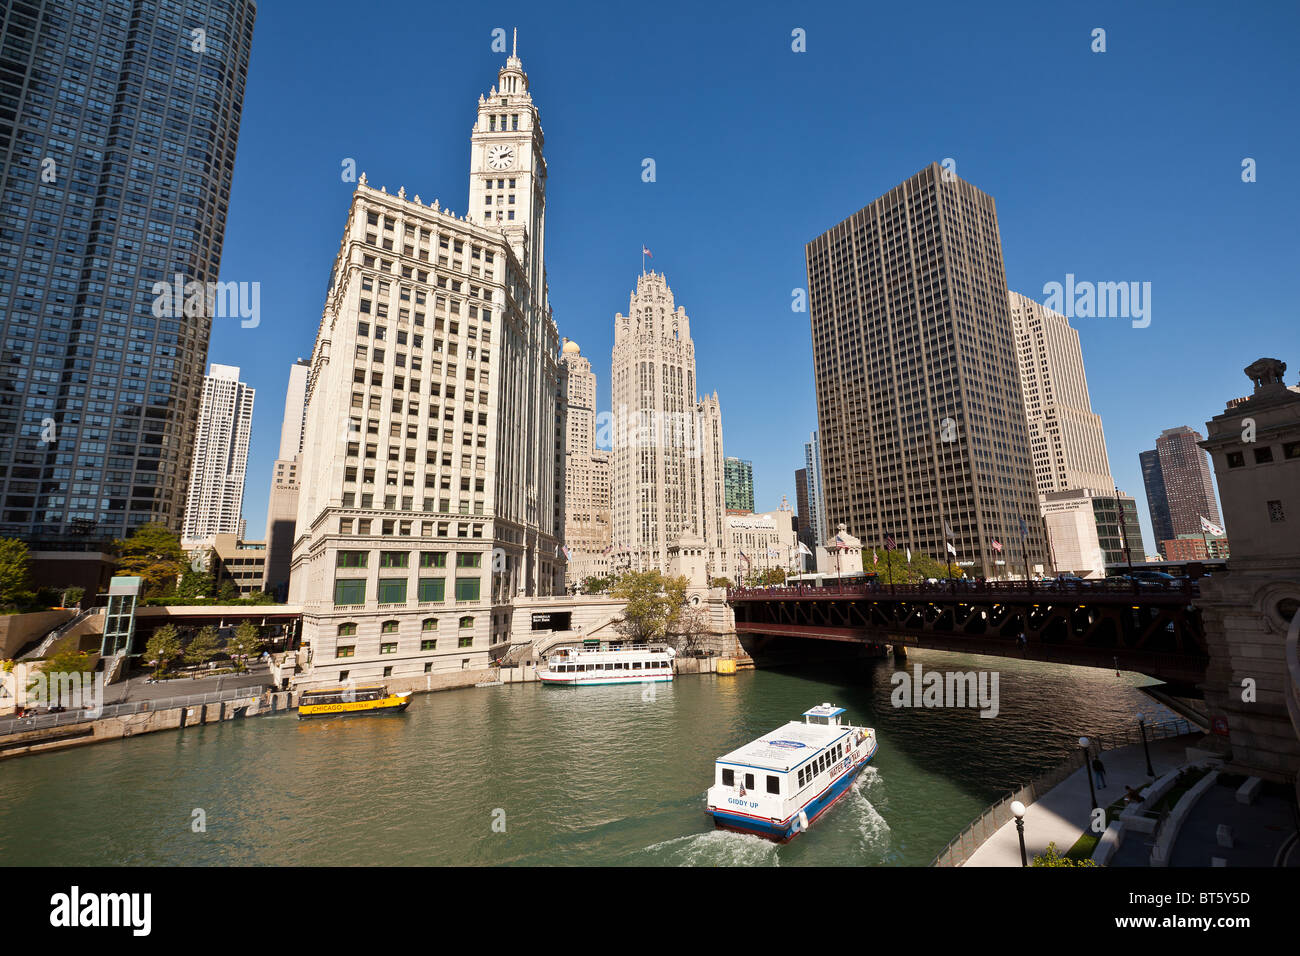 Chicago Tribune and Wrigley buildings along Michigan Ave with view of Chicago River Chicago, IL, USA. - Stock Image